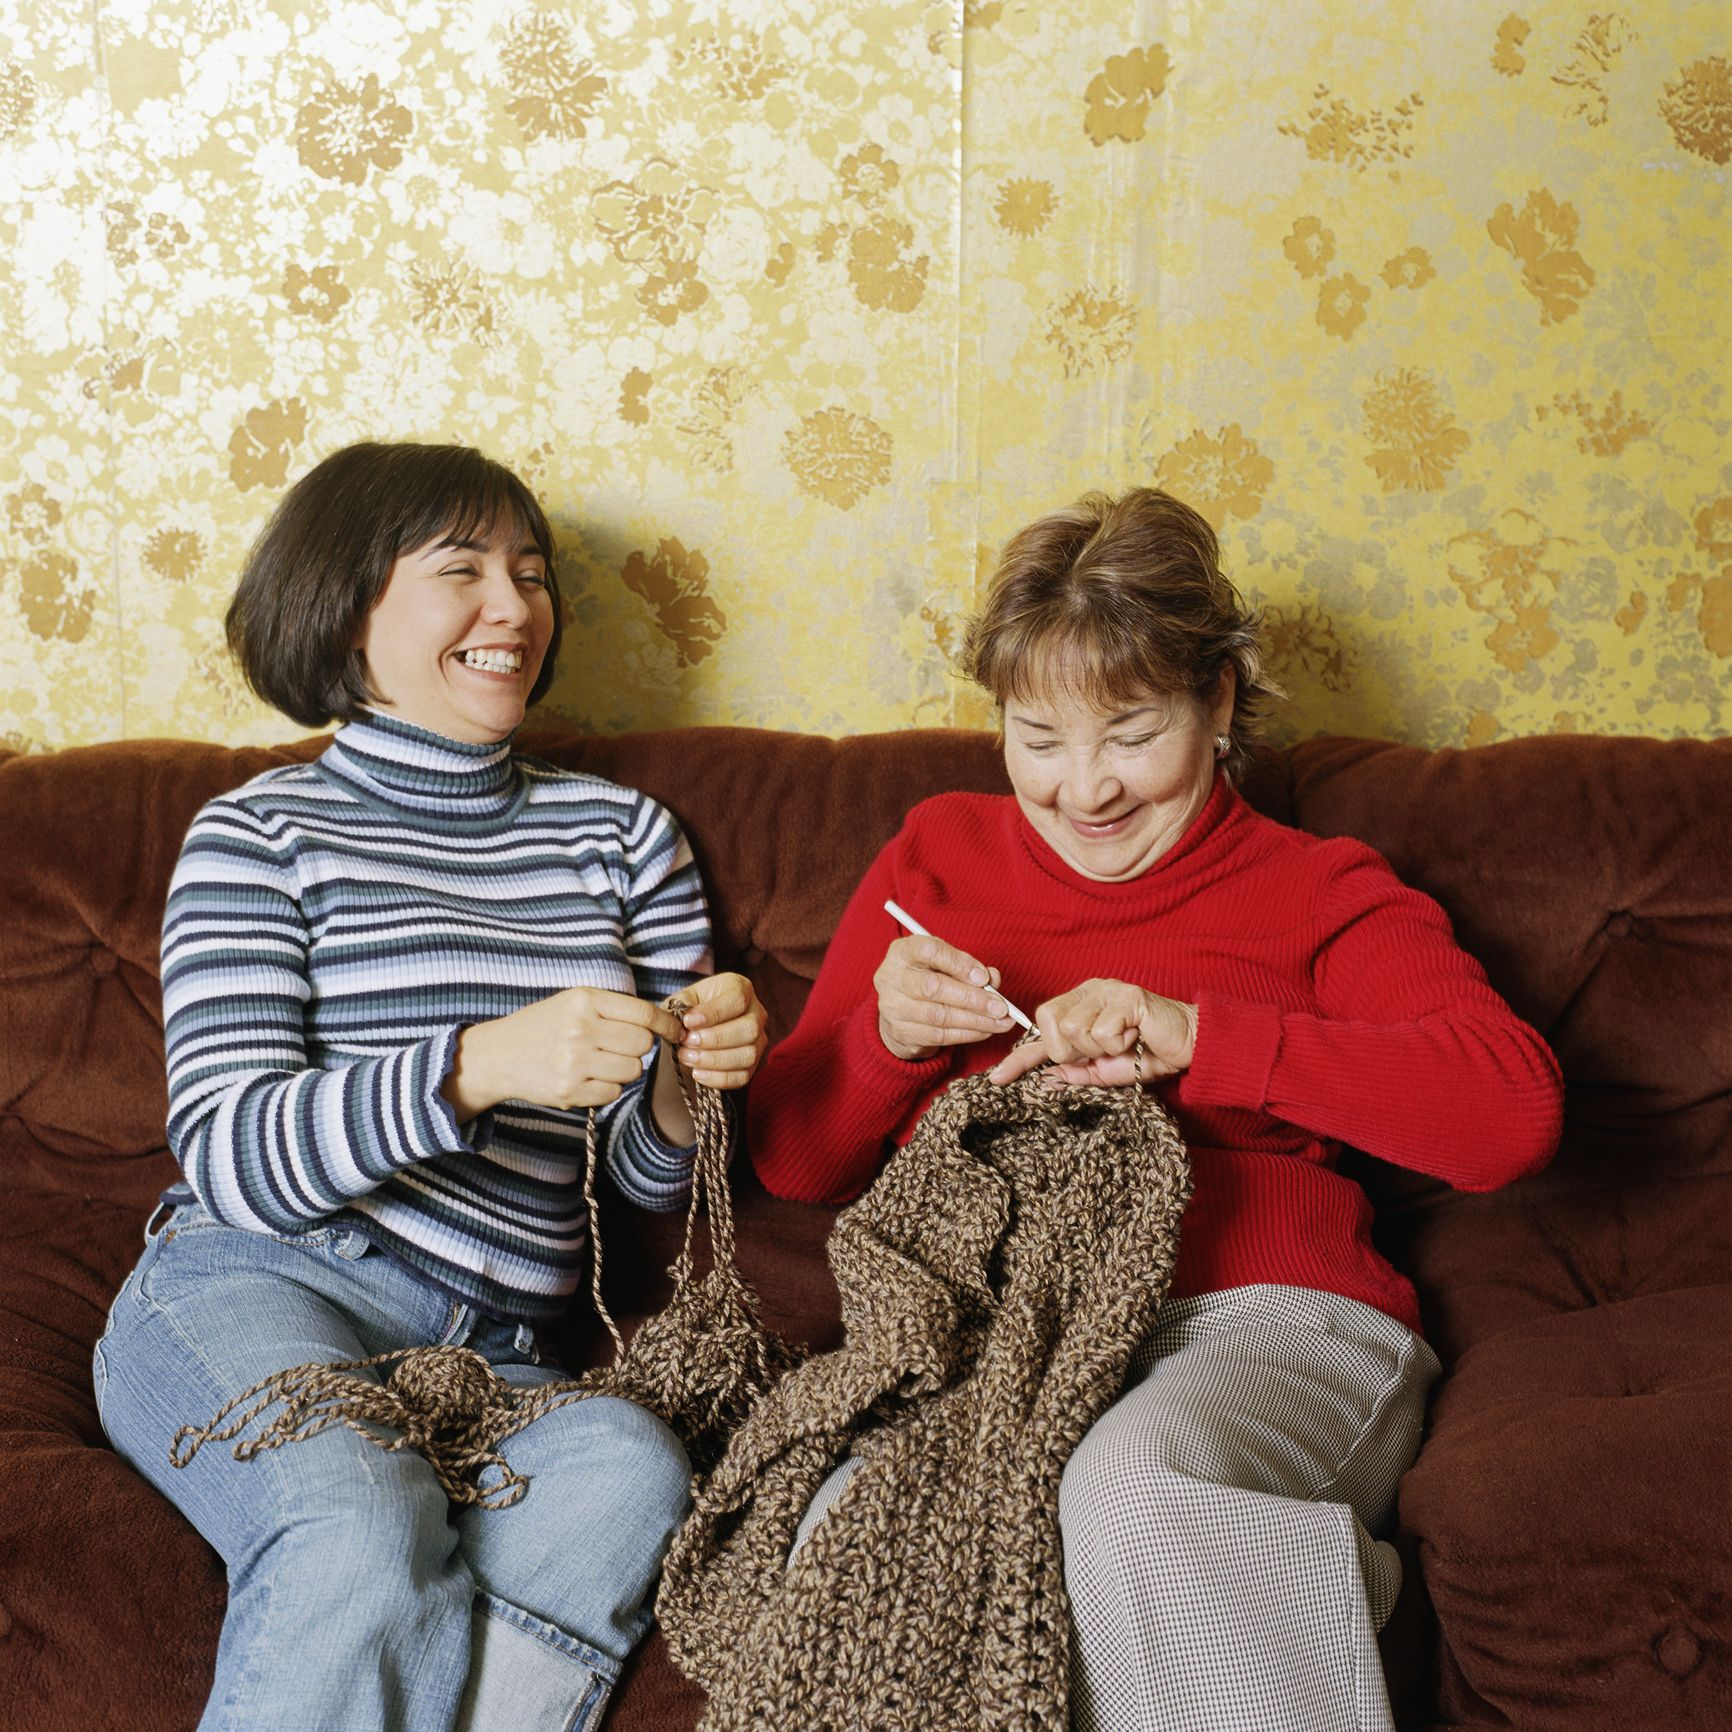 local library -- two women knitting